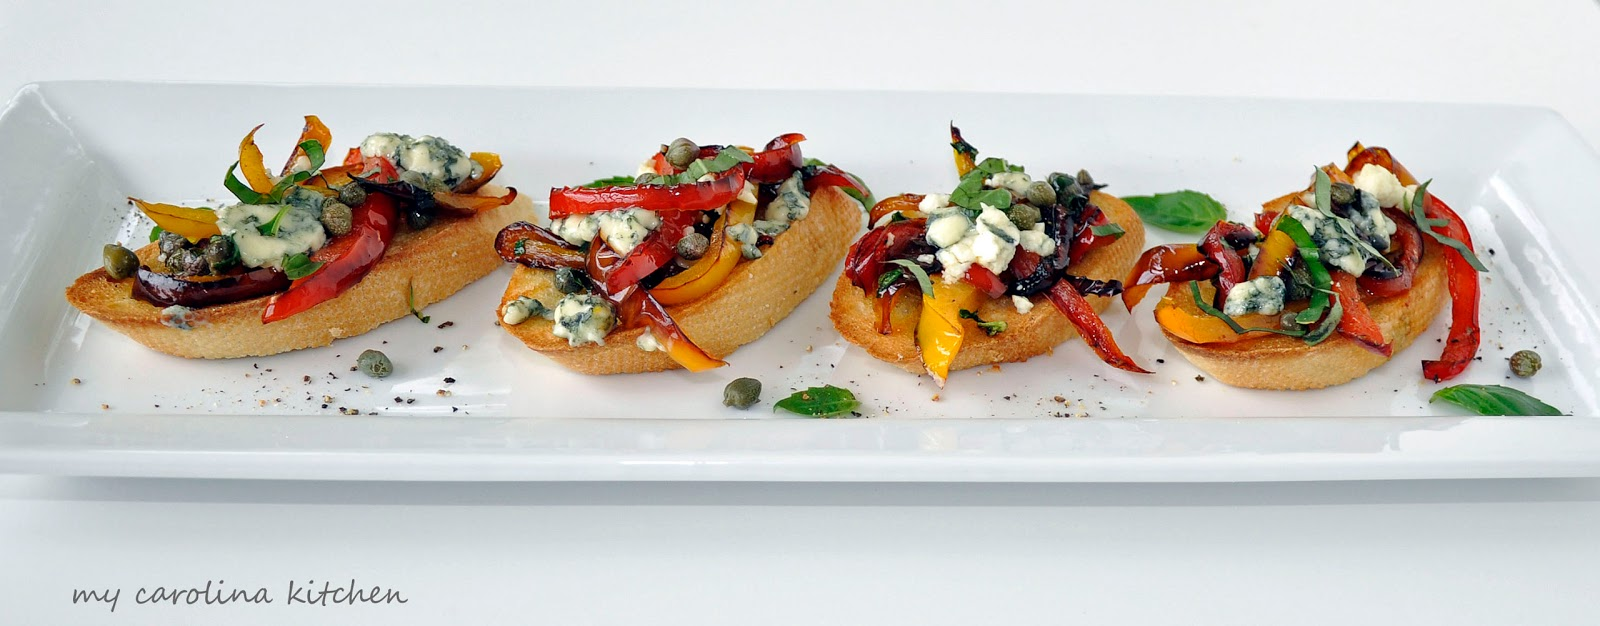 My Carolina Kitchen: Bruschetta with Sautéed Sweet Peppers and Creamy ...